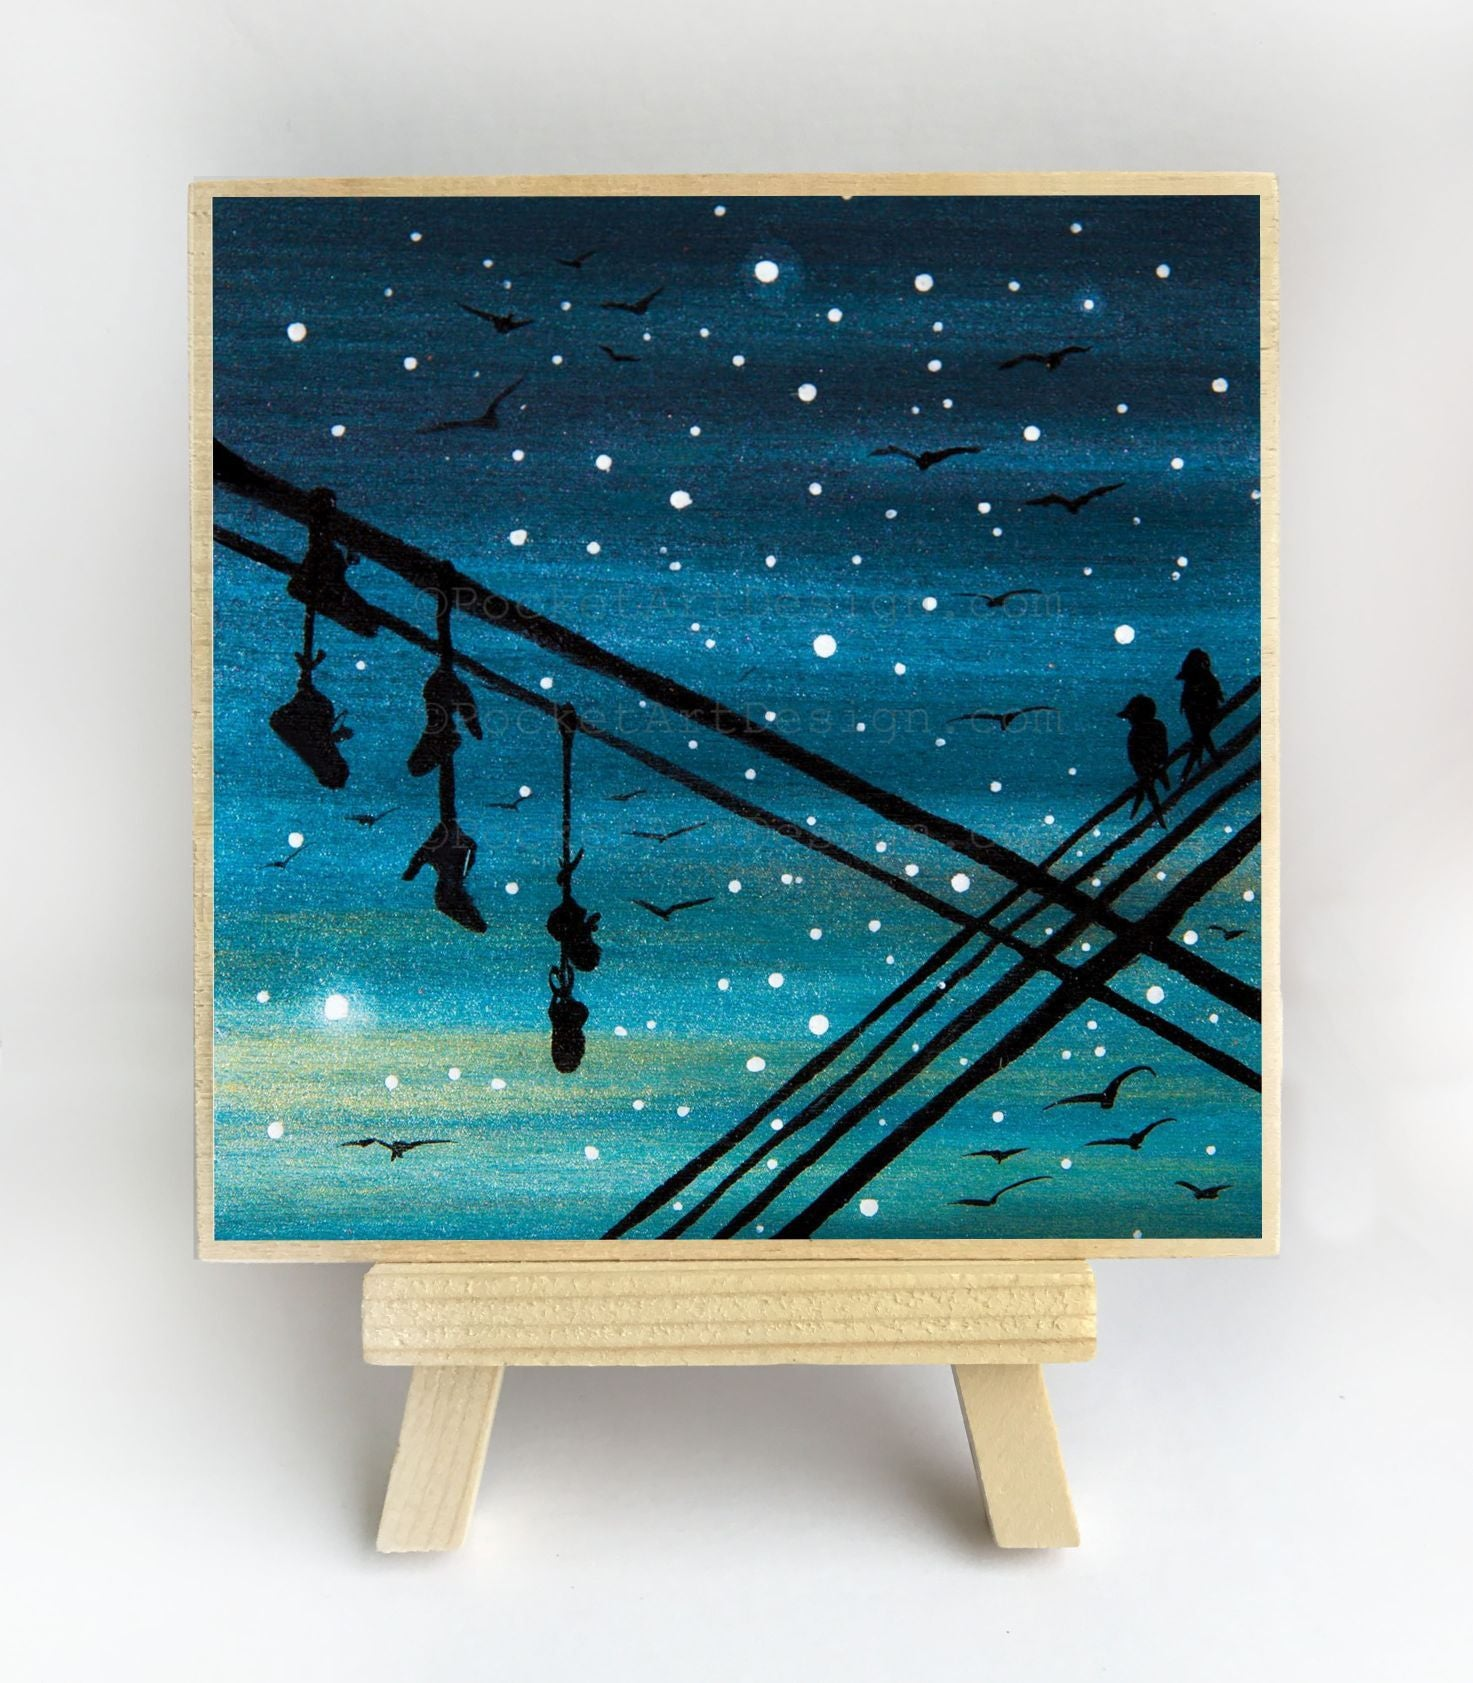 Hanged shoes - night - silhouette - original miniature art print on 4 x 4 wood-Print-Easel Wood-PocketArtDesigns-Original Art-wall rt